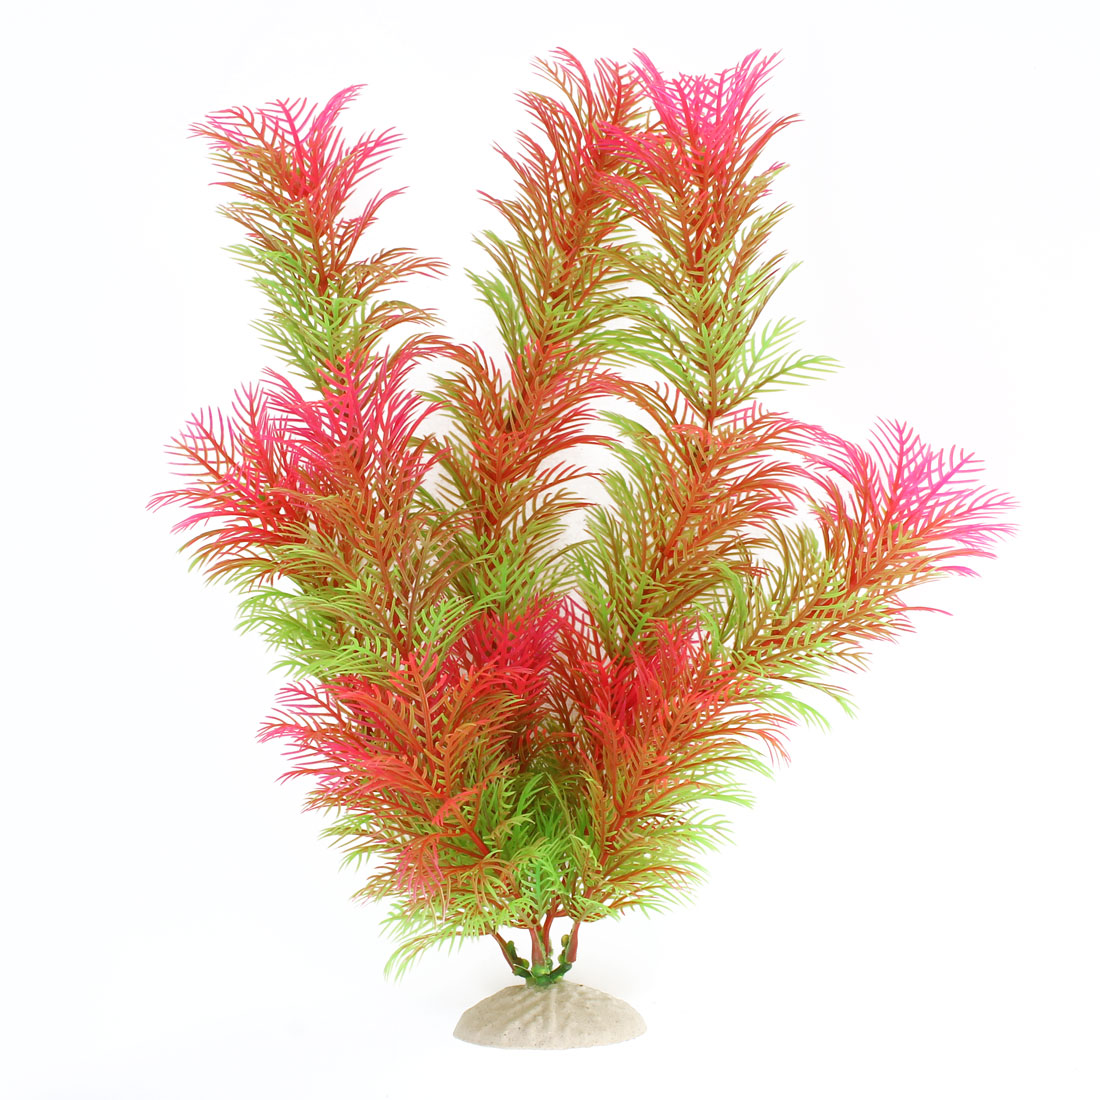 "Green Pink 12.2"" HeightFish Tank Plastic Simulation Aquatic Plant Ornament Decor"